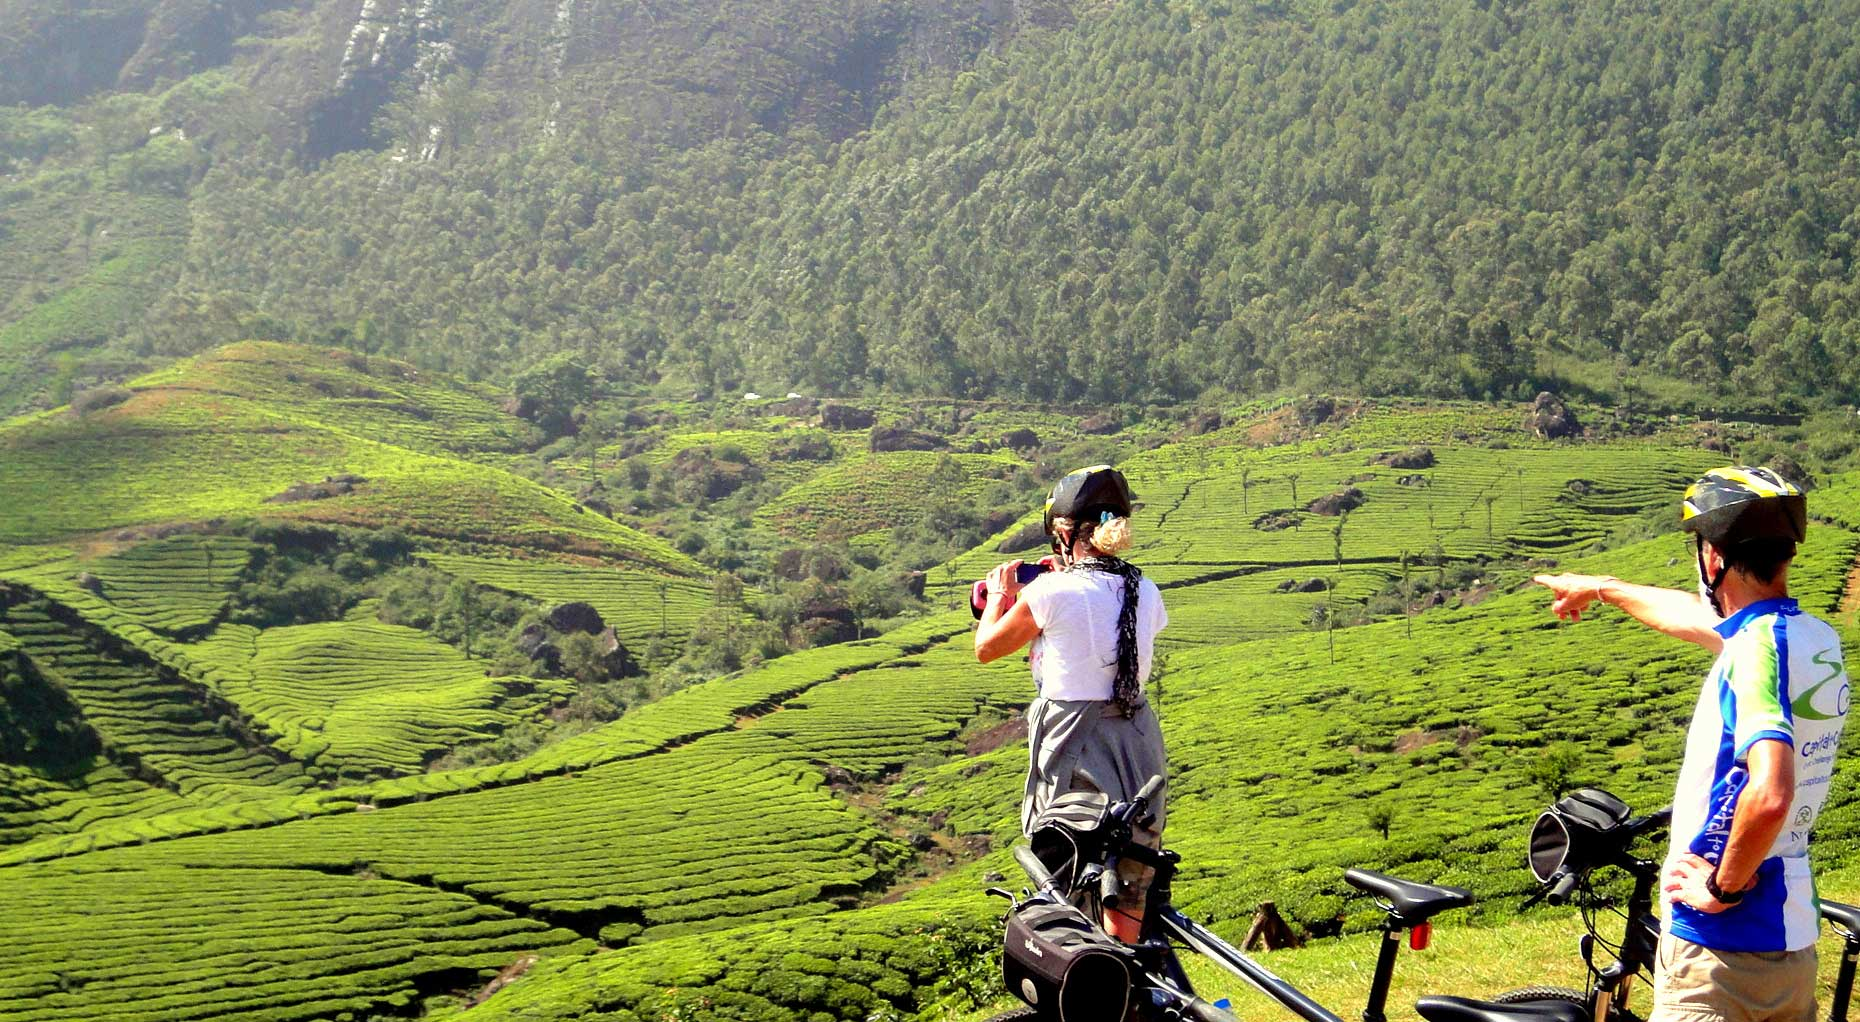 Day 2 : Full Day Munnar Sight Seeing